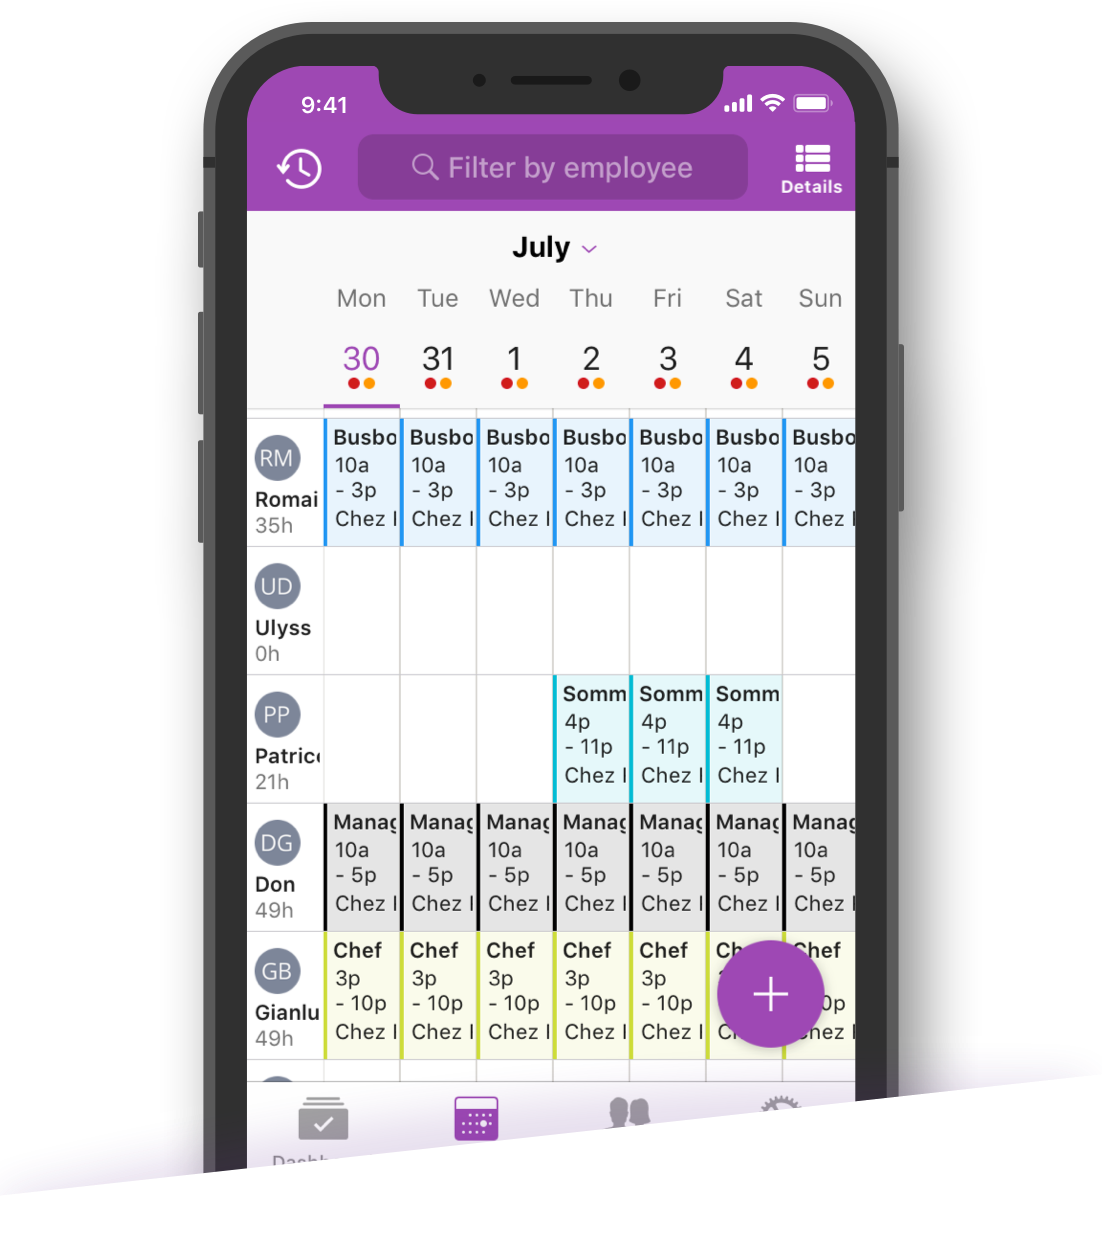 Both employees and managers can view schedules within the Voilà mobile app